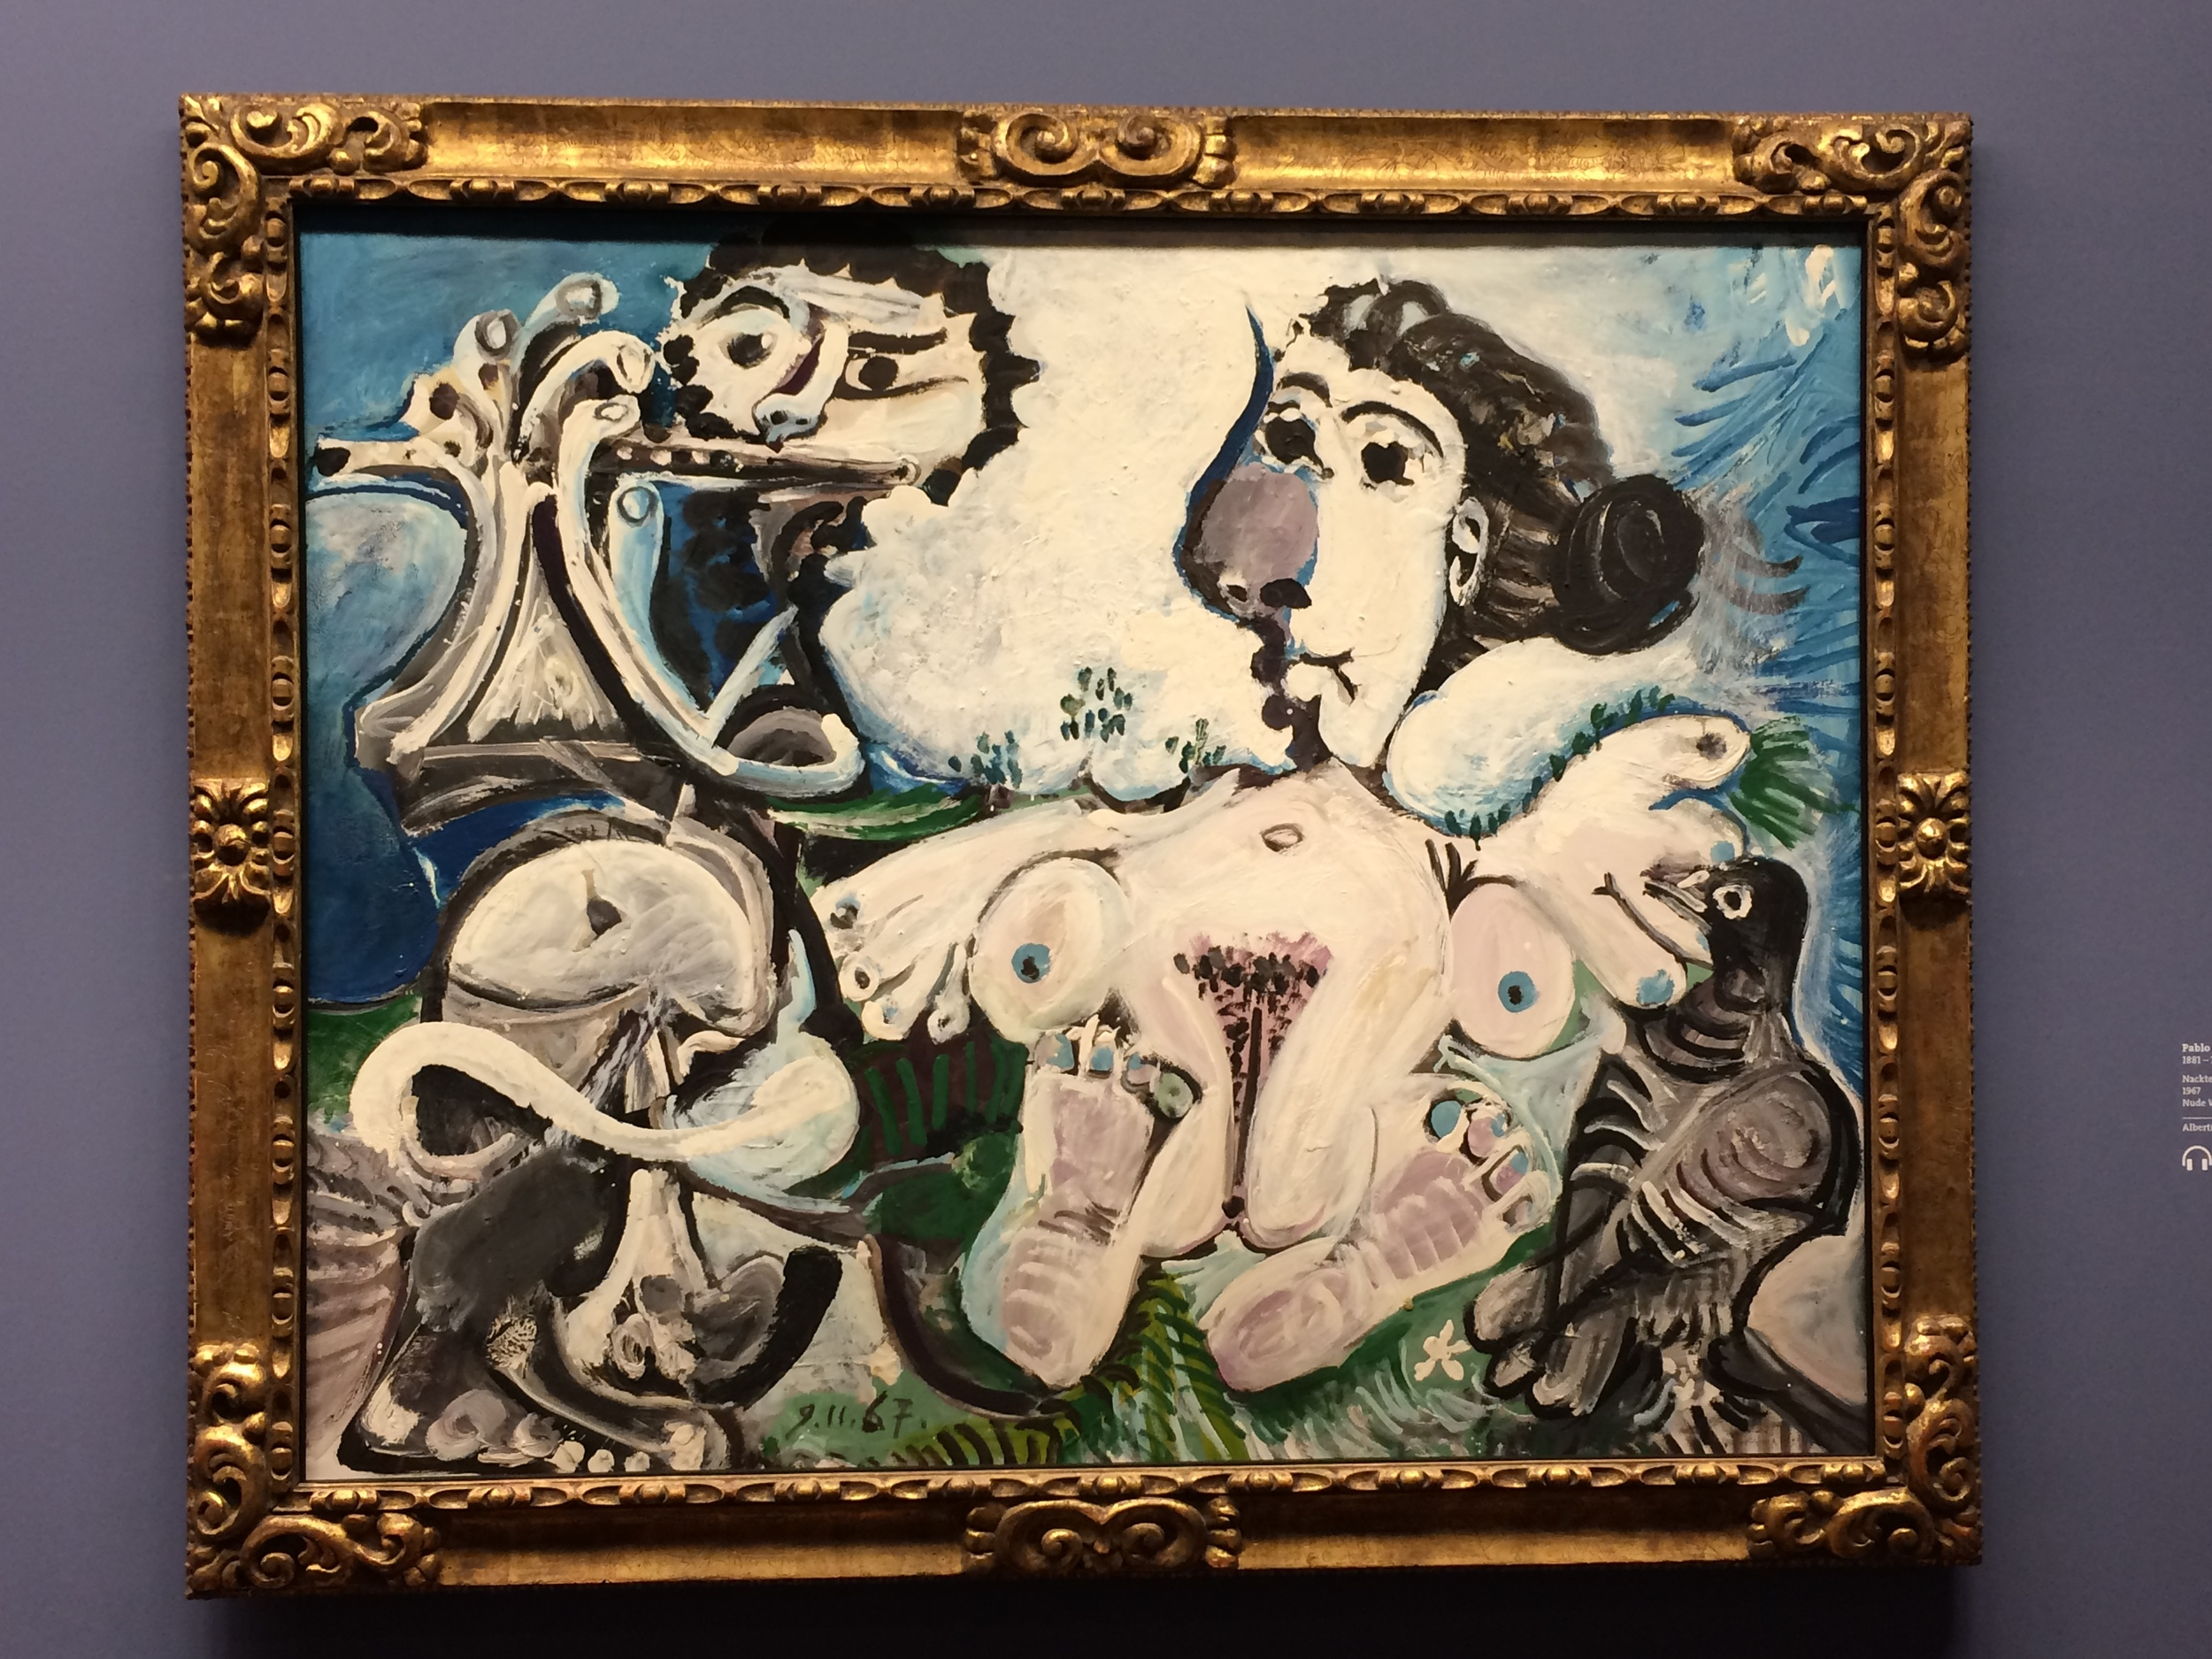 This is a Picasso. But you probably already knew that. Fun thing to think about: Why are they naked in bed with a bird?